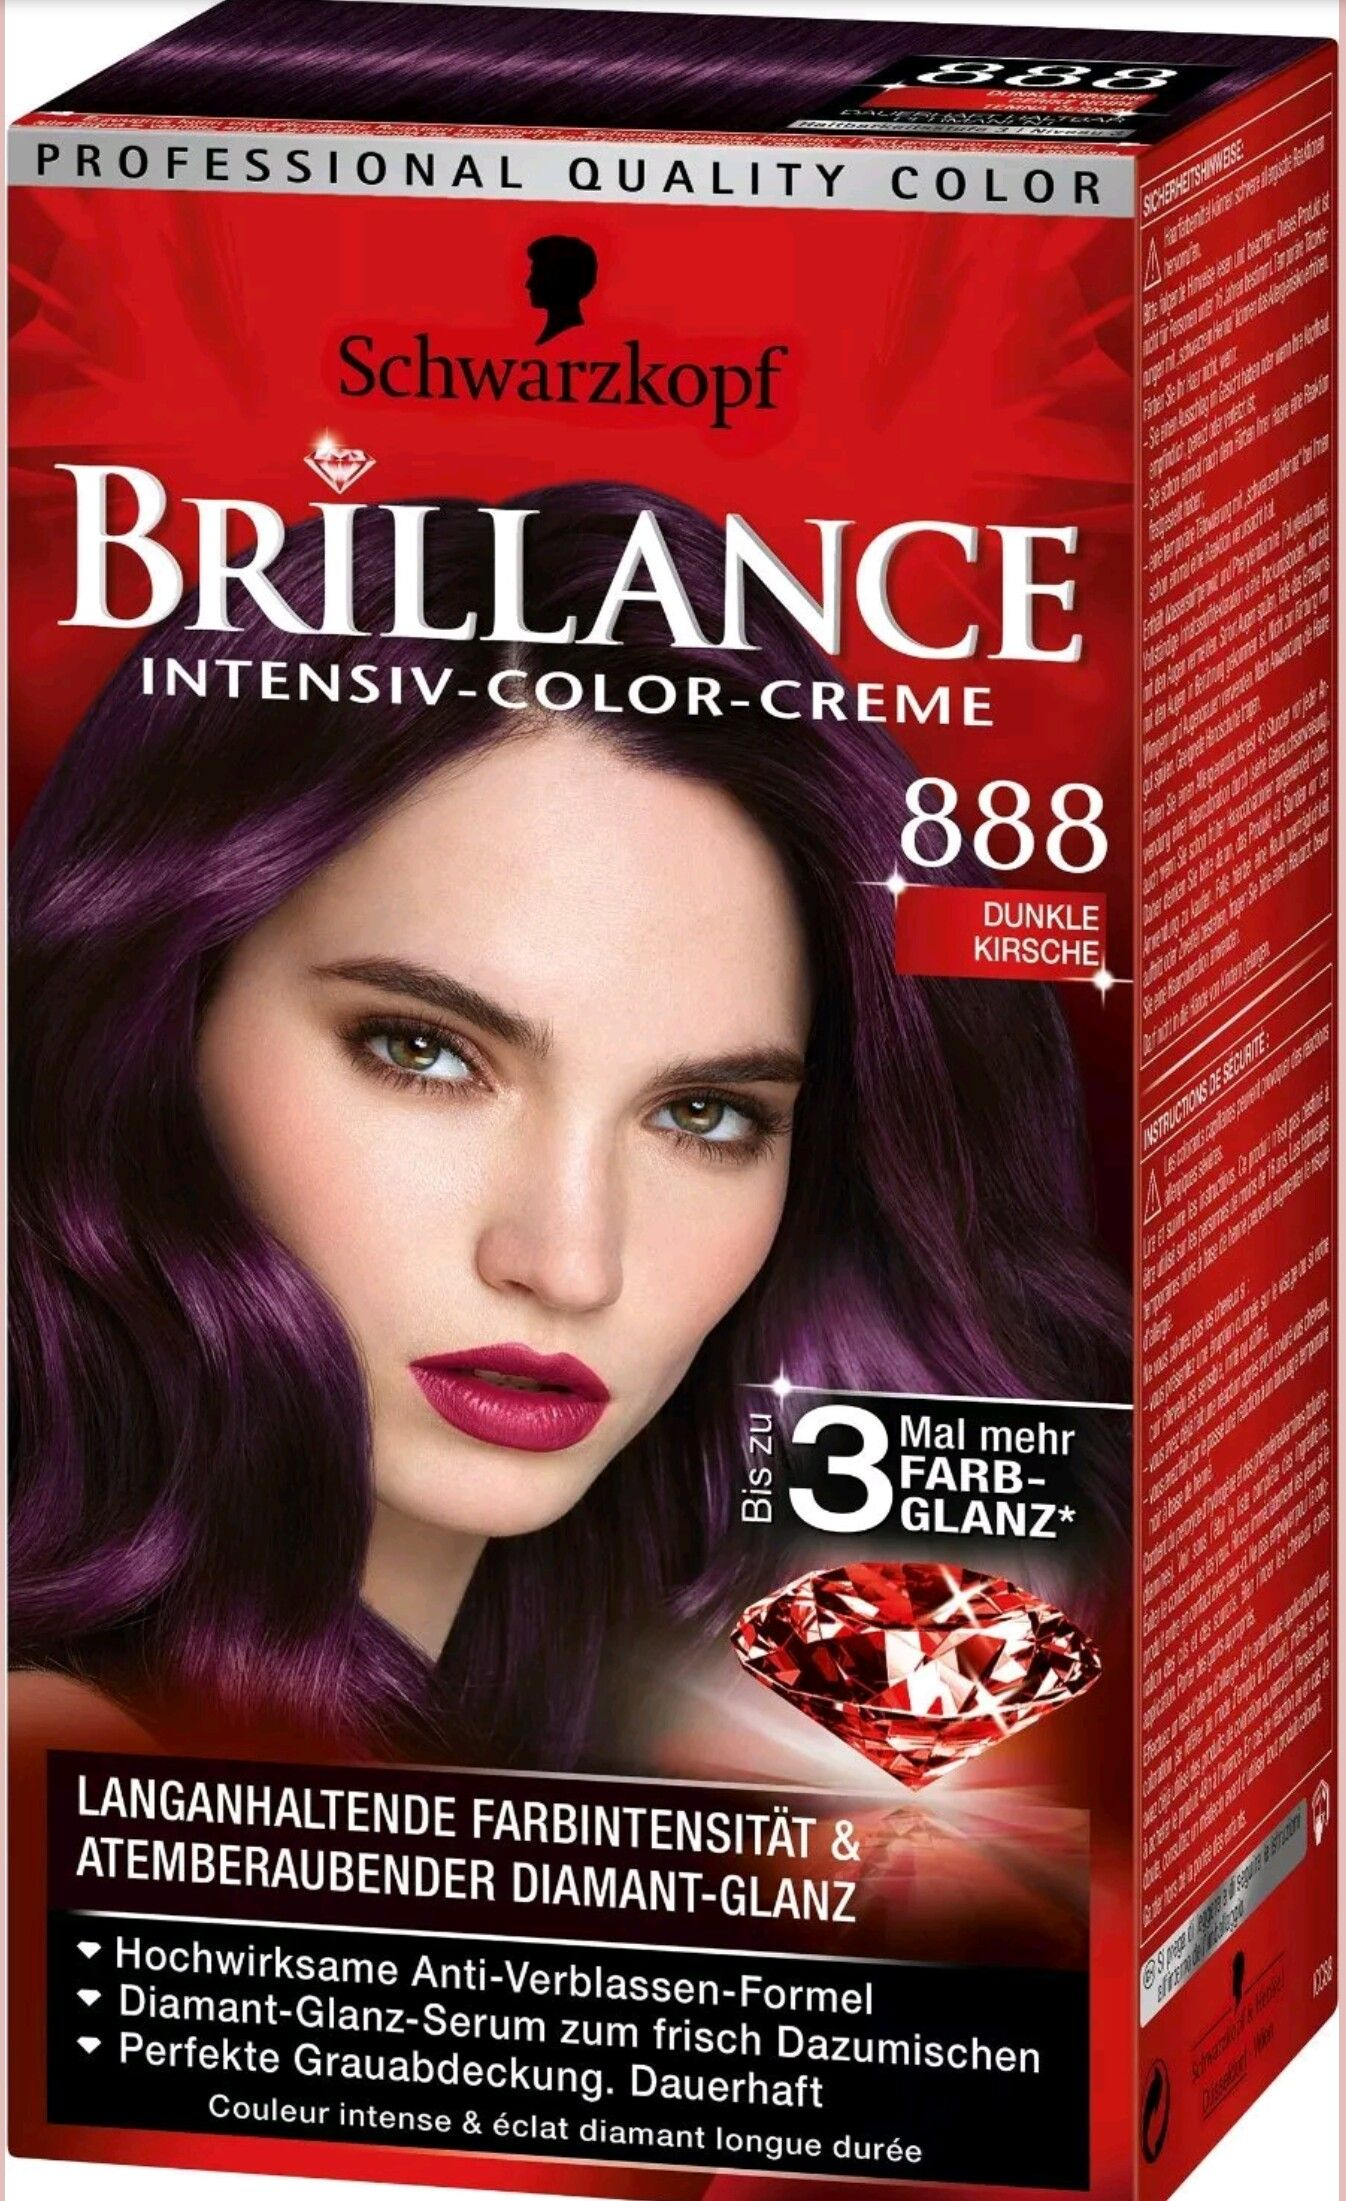 Operation Purple Hair Stage 2 Yes I Ordered One Of The Colors From Germany Trying This Out In J Schwarzkopf Hair Color Schwarzkopf Vintage Hair Accessories